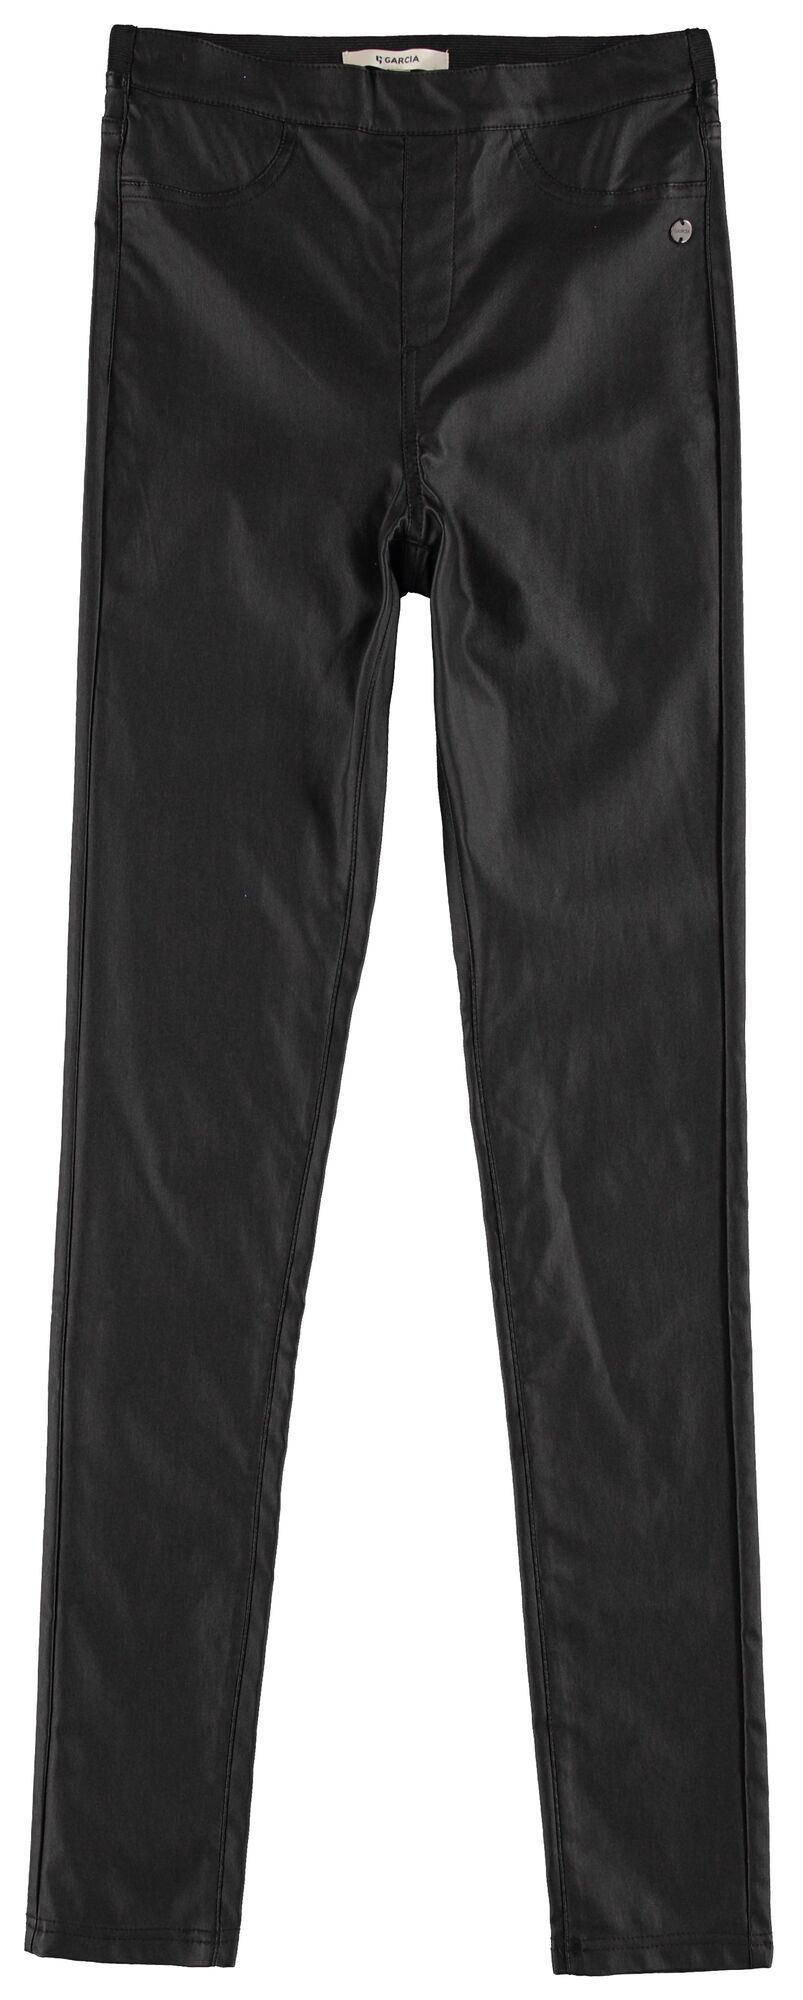 Black Leather Look Skinny Trousers by Garcia